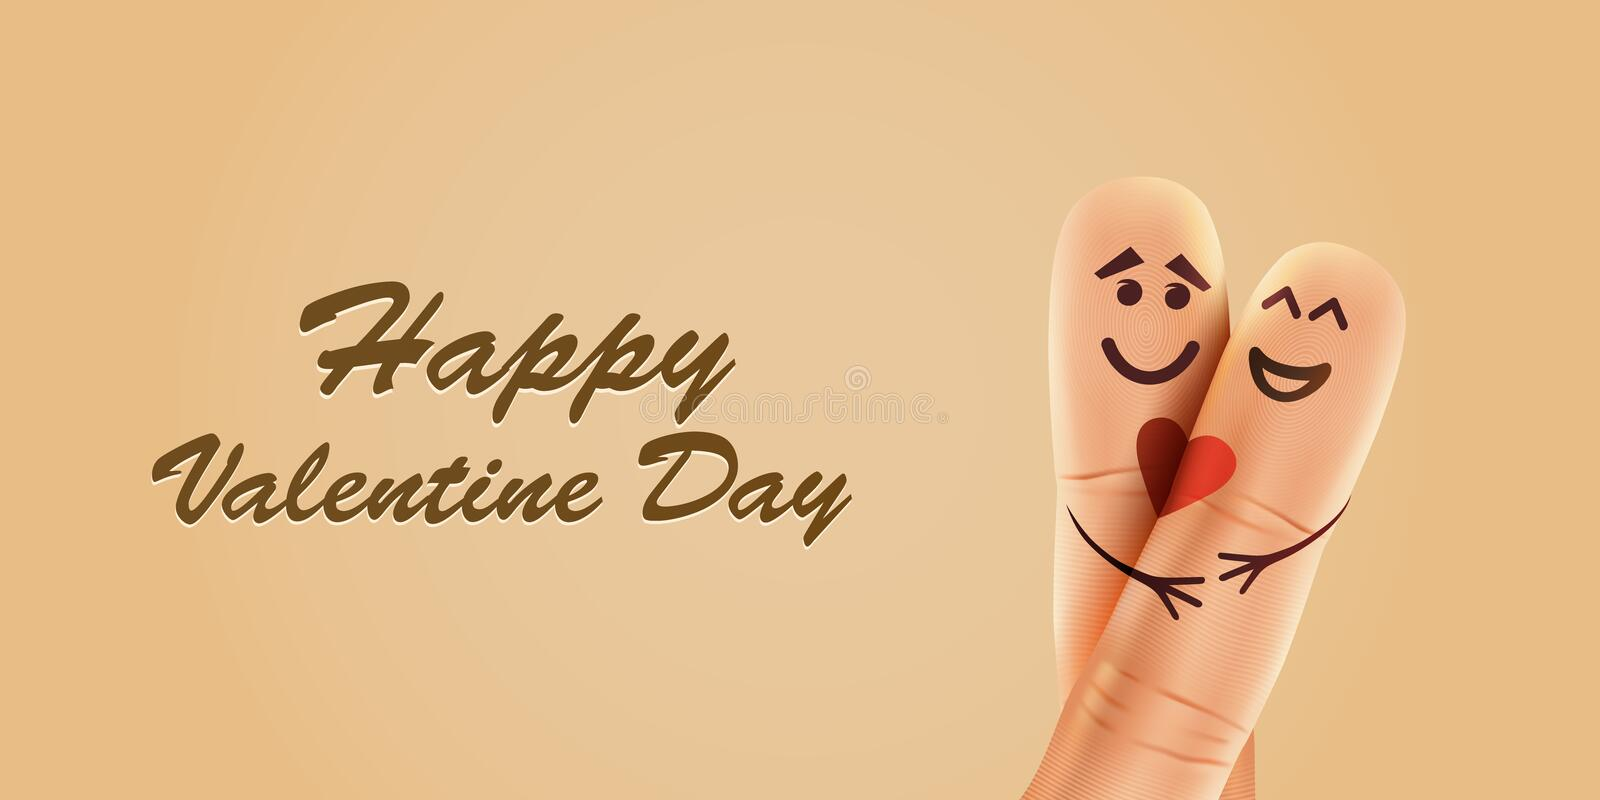 Finger couple in love with painted smiley and hugging vector illustration